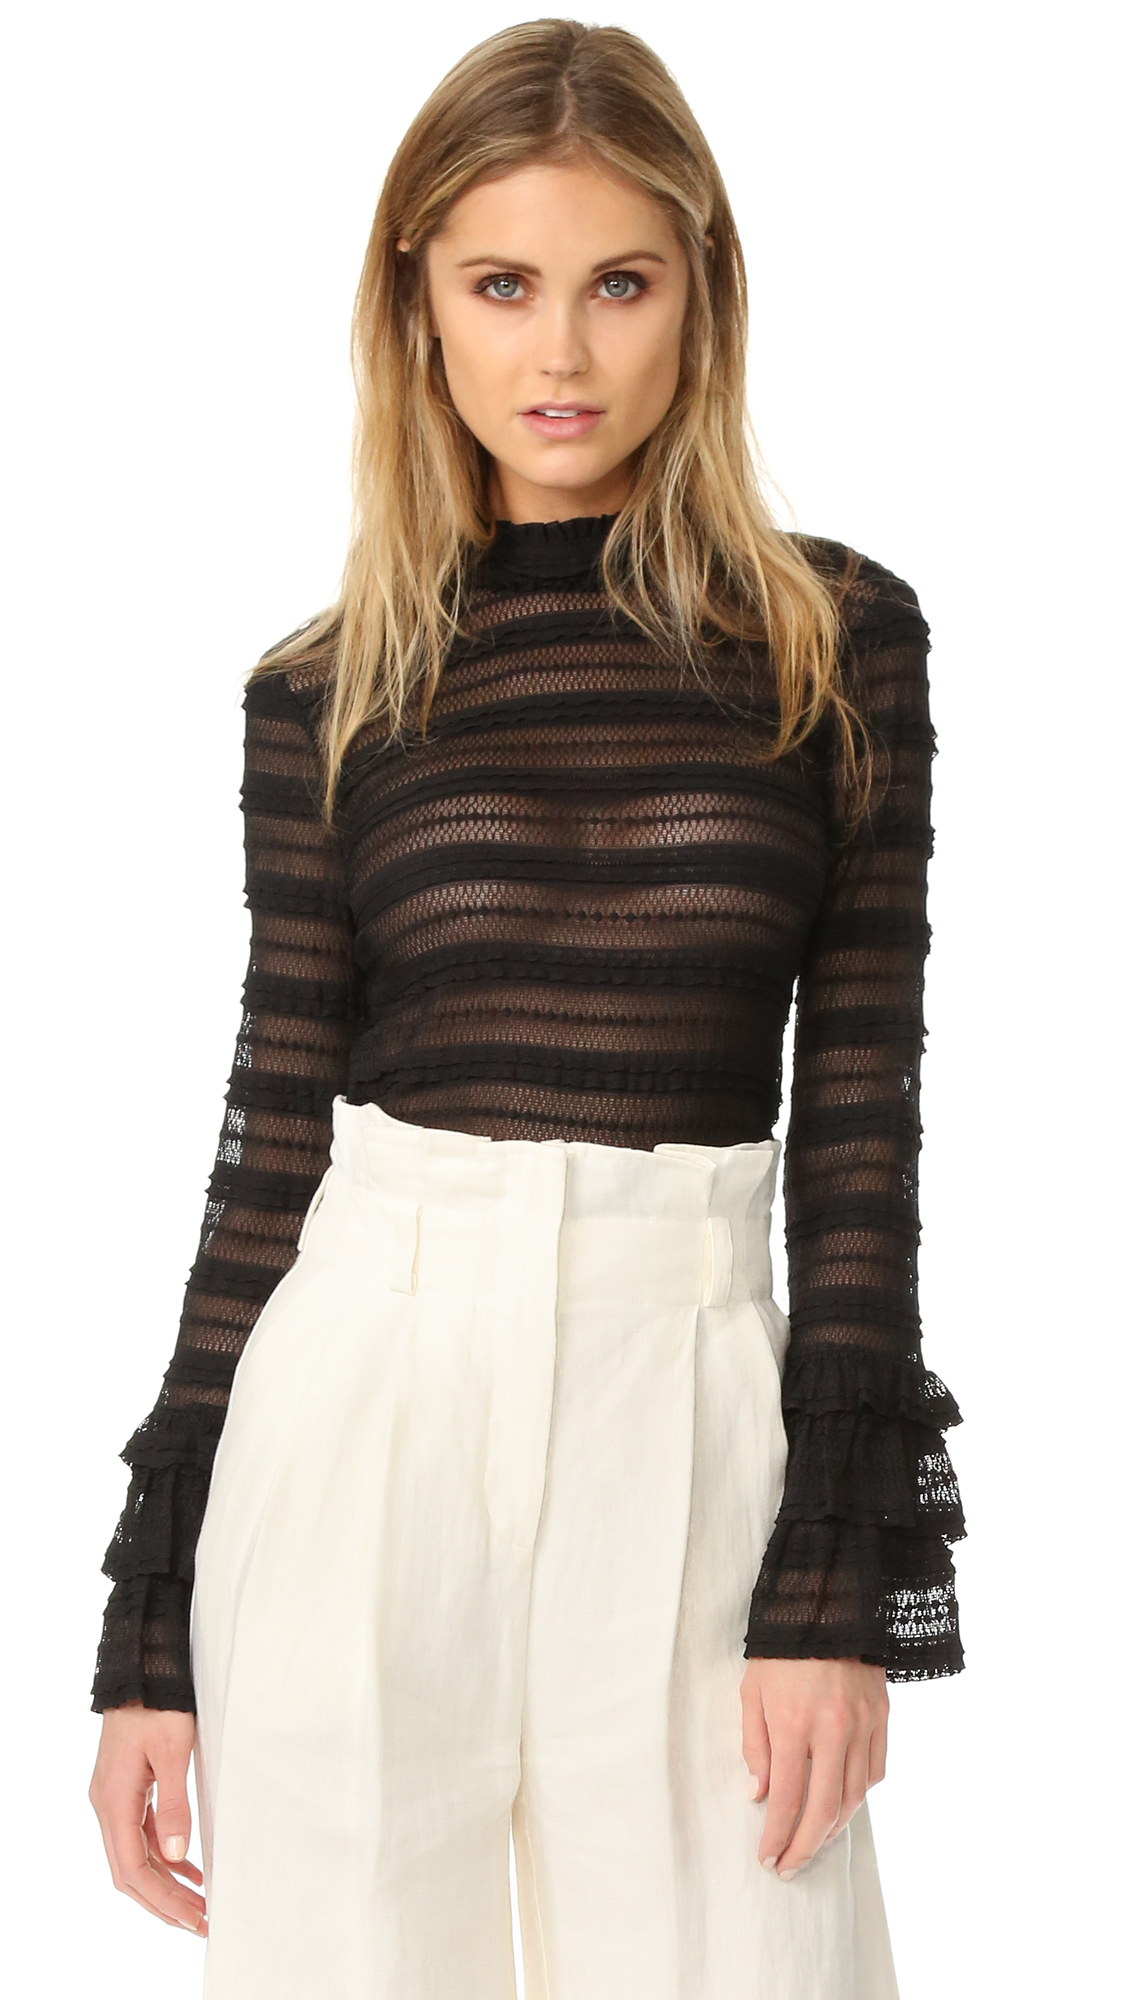 Tiered ruffles and shadow stripes lend dimension to this lace Cinq a Sept top. The formfitting piece is styled with a high neckline, and the long sleeves flare into ruffle cuffs. Hidden back zip. Semi sheer.